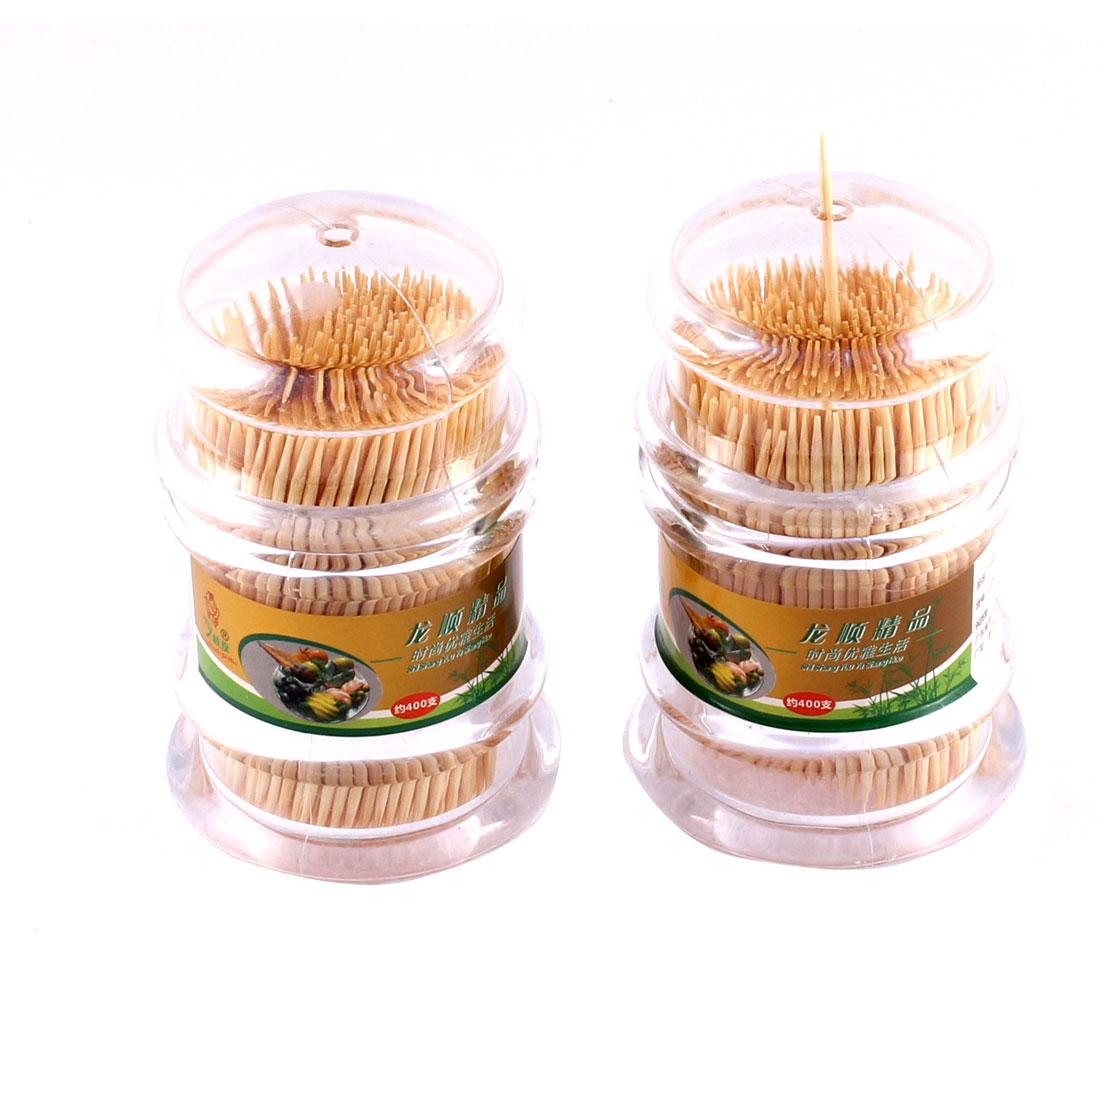 Household Dining Room Plastic Case Box Holder Storage Dispenser 2pcs w Toothpick